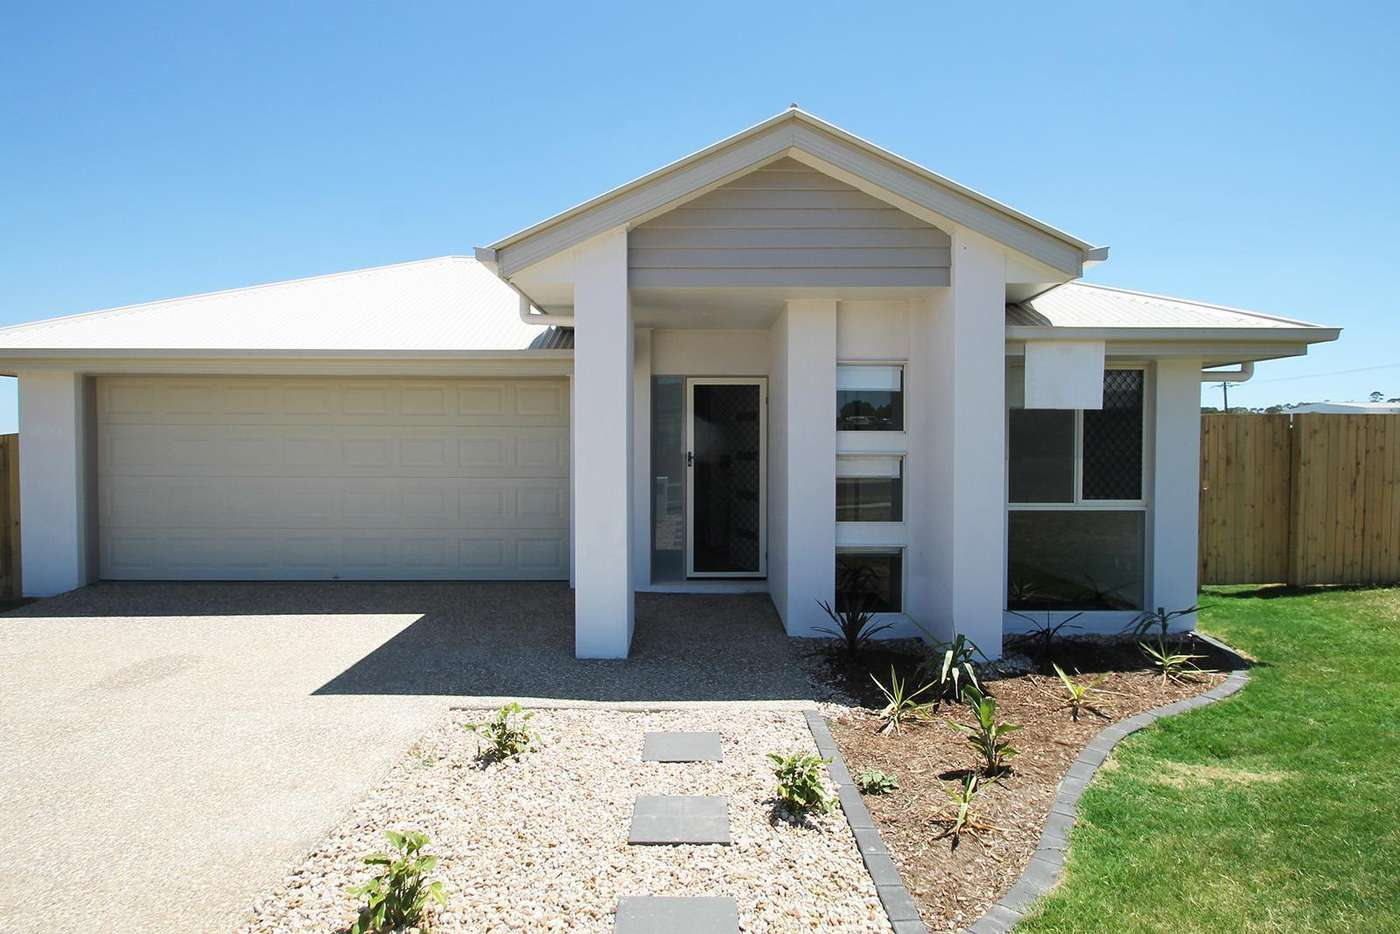 Main view of Homely house listing, 19 Serengetti Street, Harristown QLD 4350